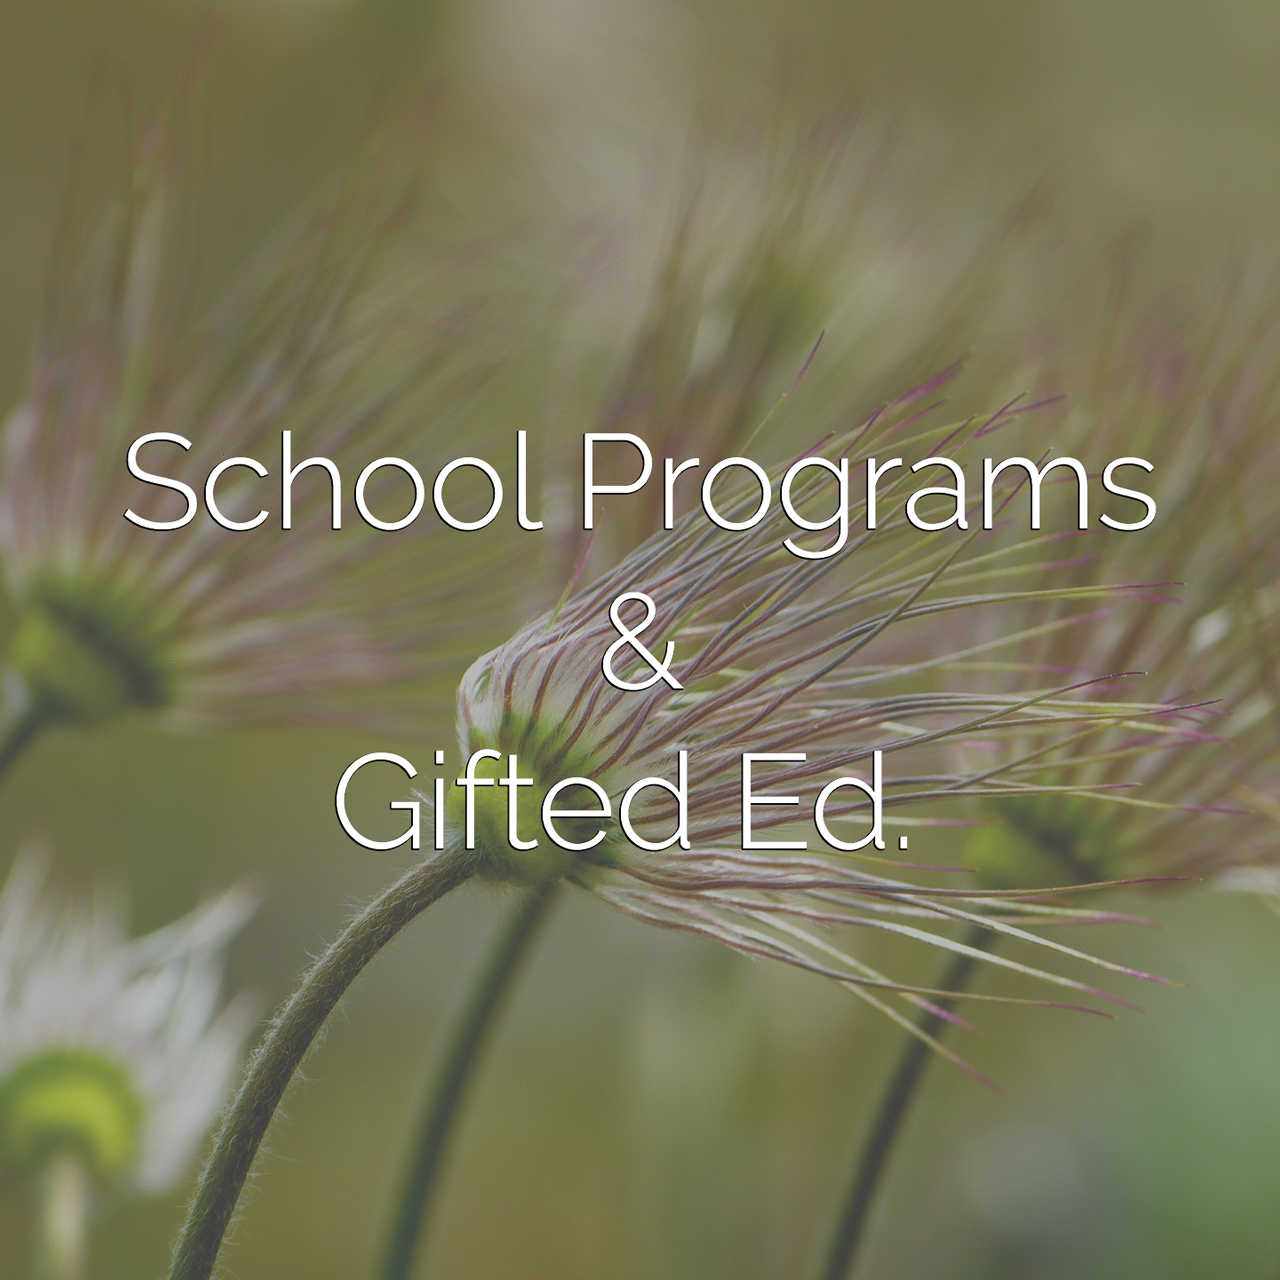 A Mindful Life | School Programs & Gifted Education